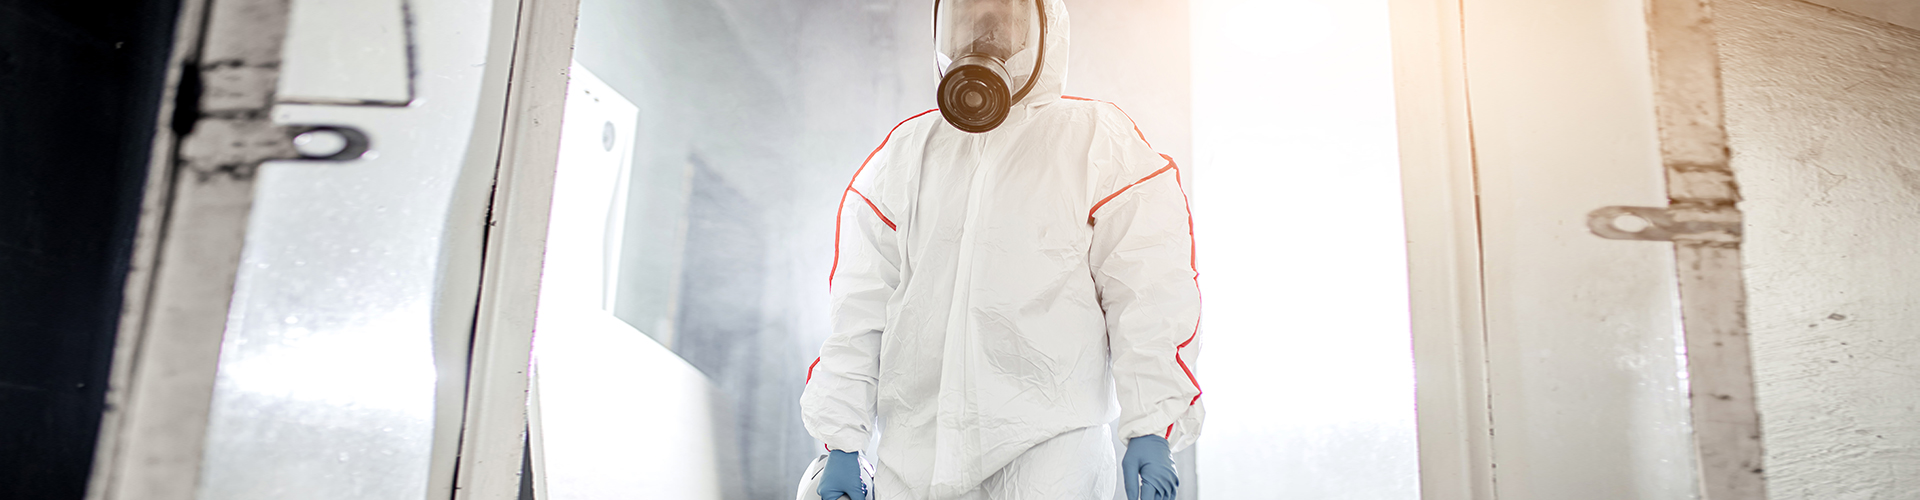 man holding pest chemical container